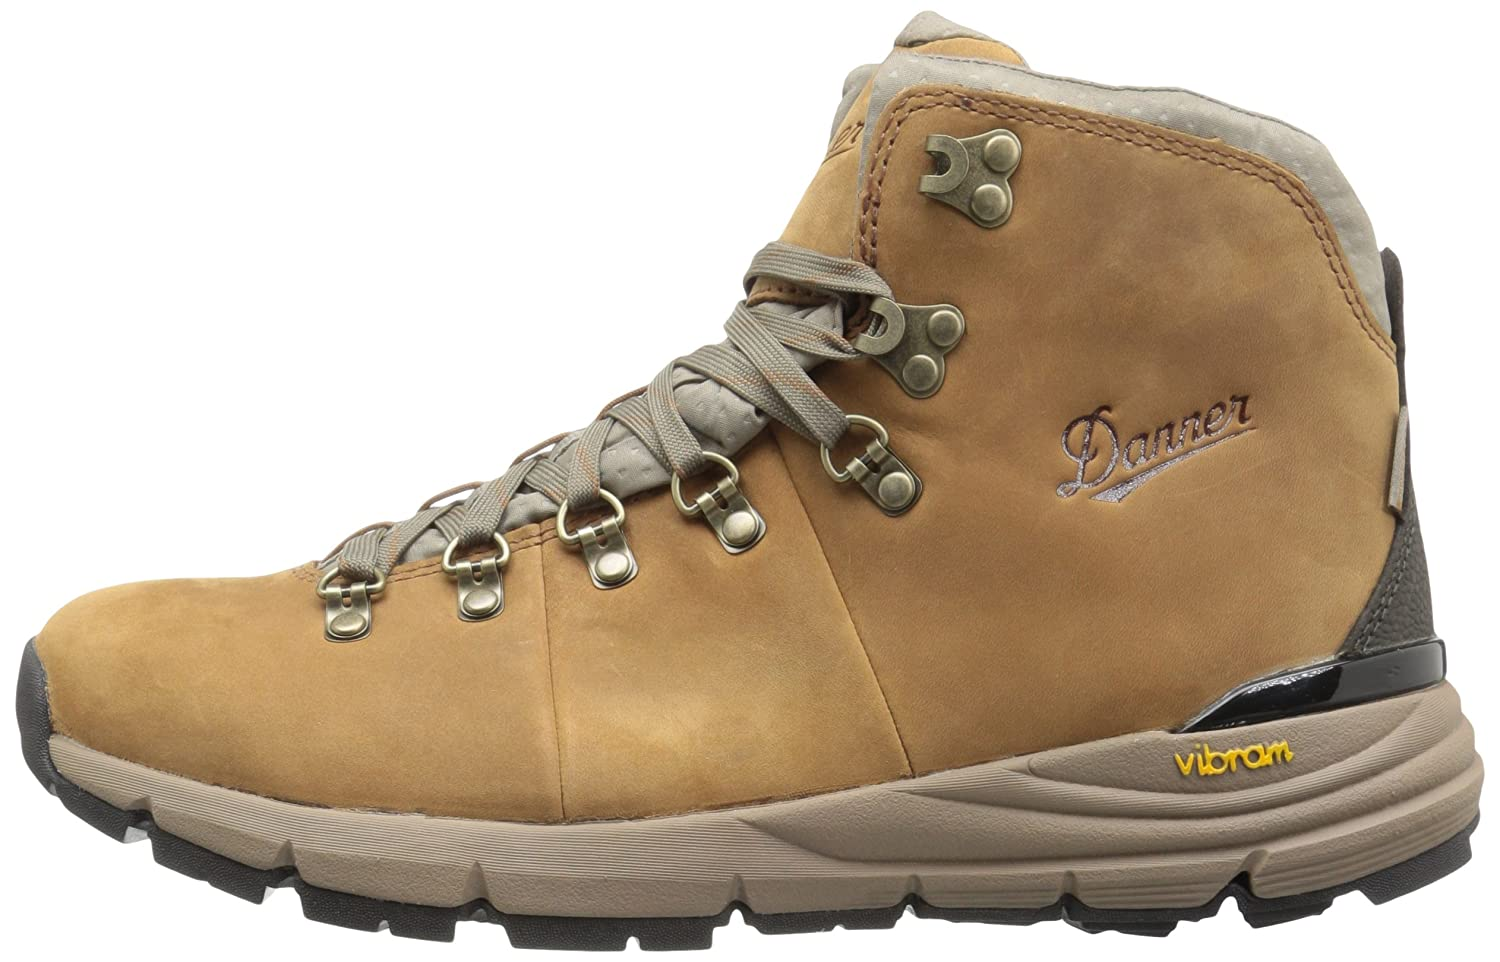 Danner Women's Mountain 600 Full Grain Hiking Boot B01MR0OM6D 9 B(M) US|Rich Brown